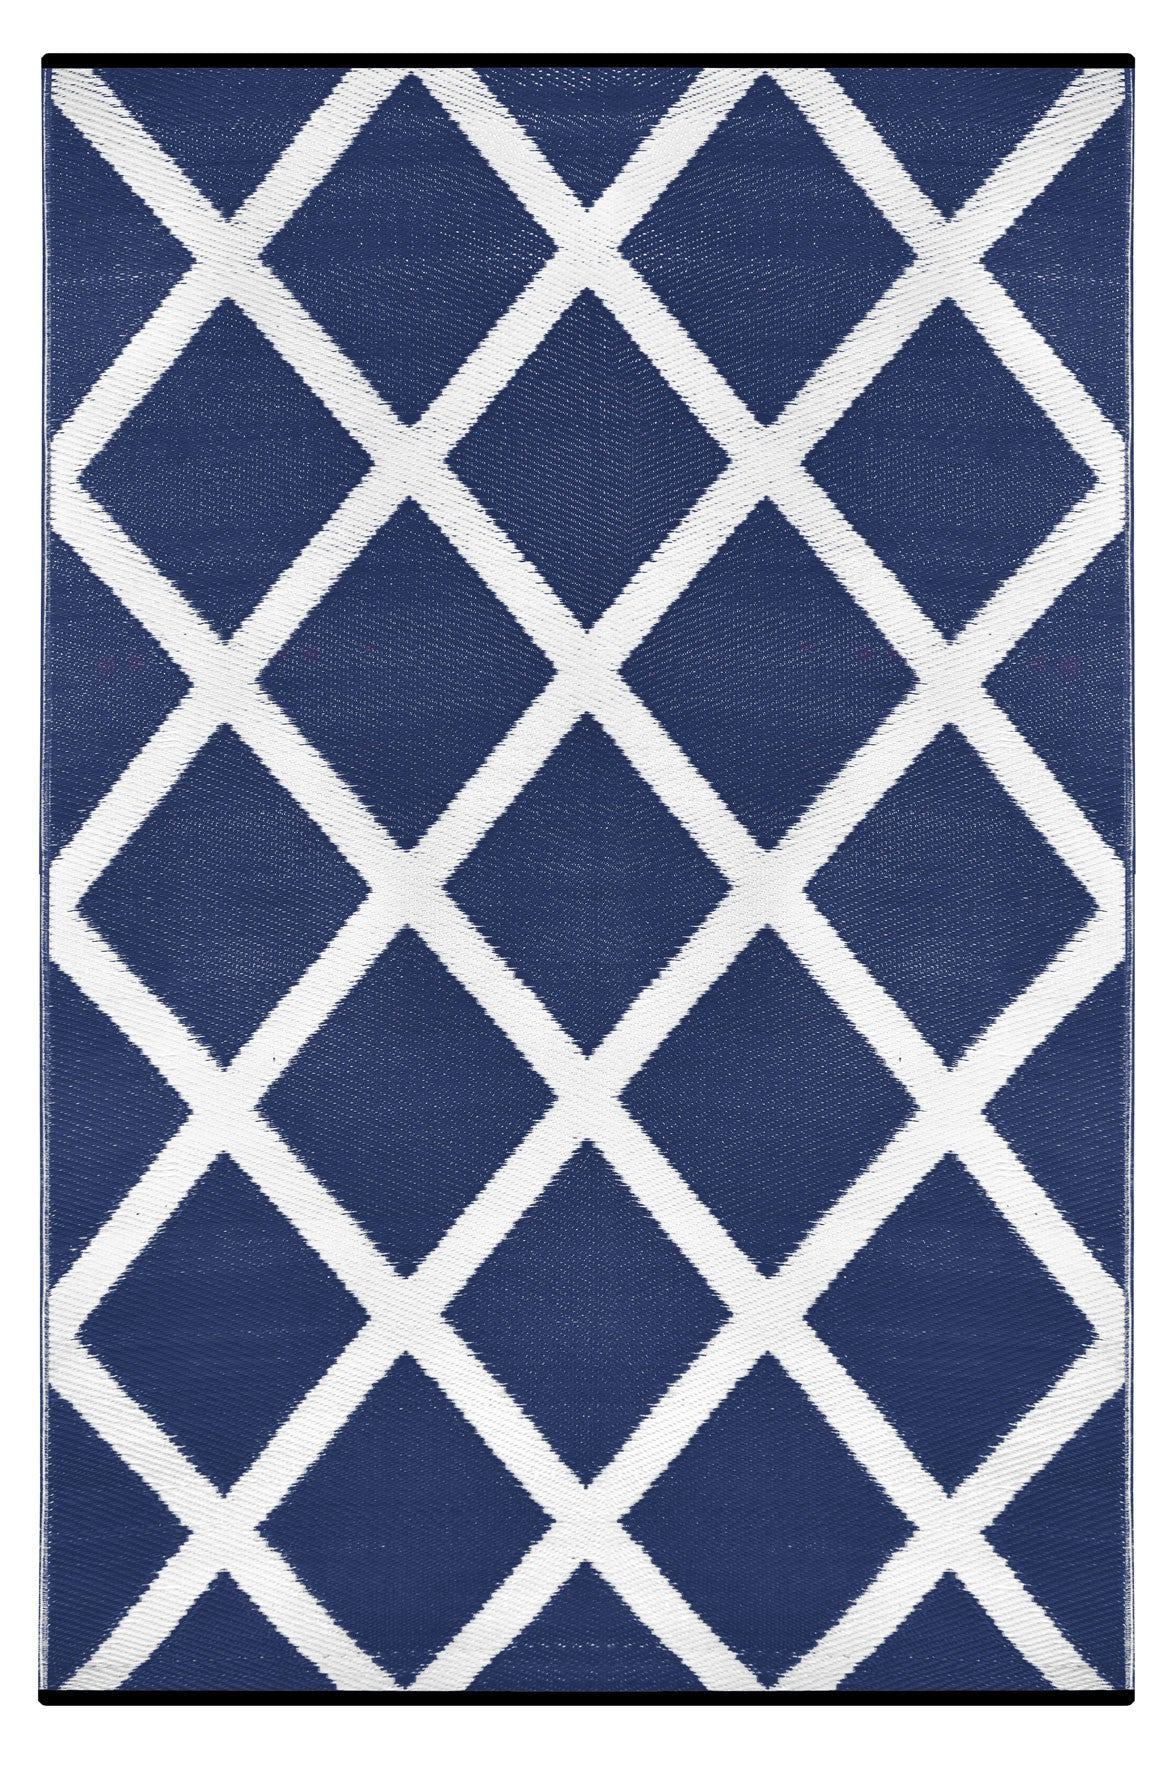 navy blue and white indoor outdoor rug - green decore